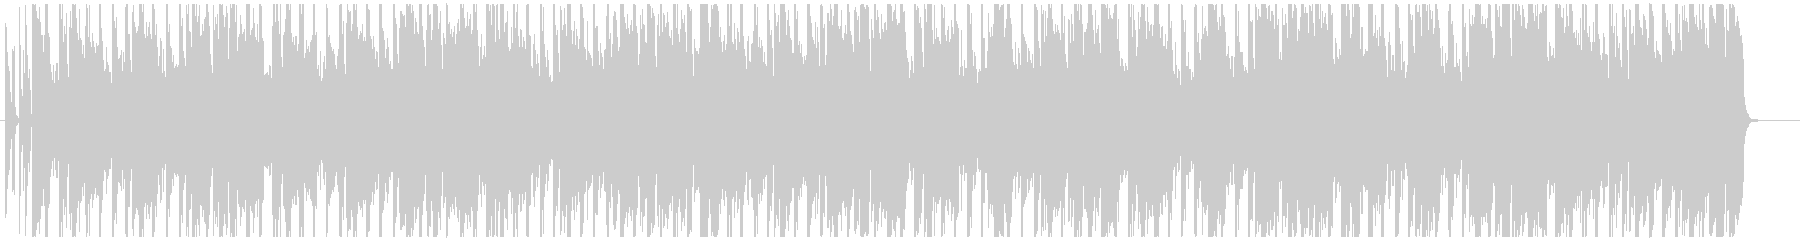 Four-on-the-floor city pop with a fashionable atmosphere's unreproduced waveform